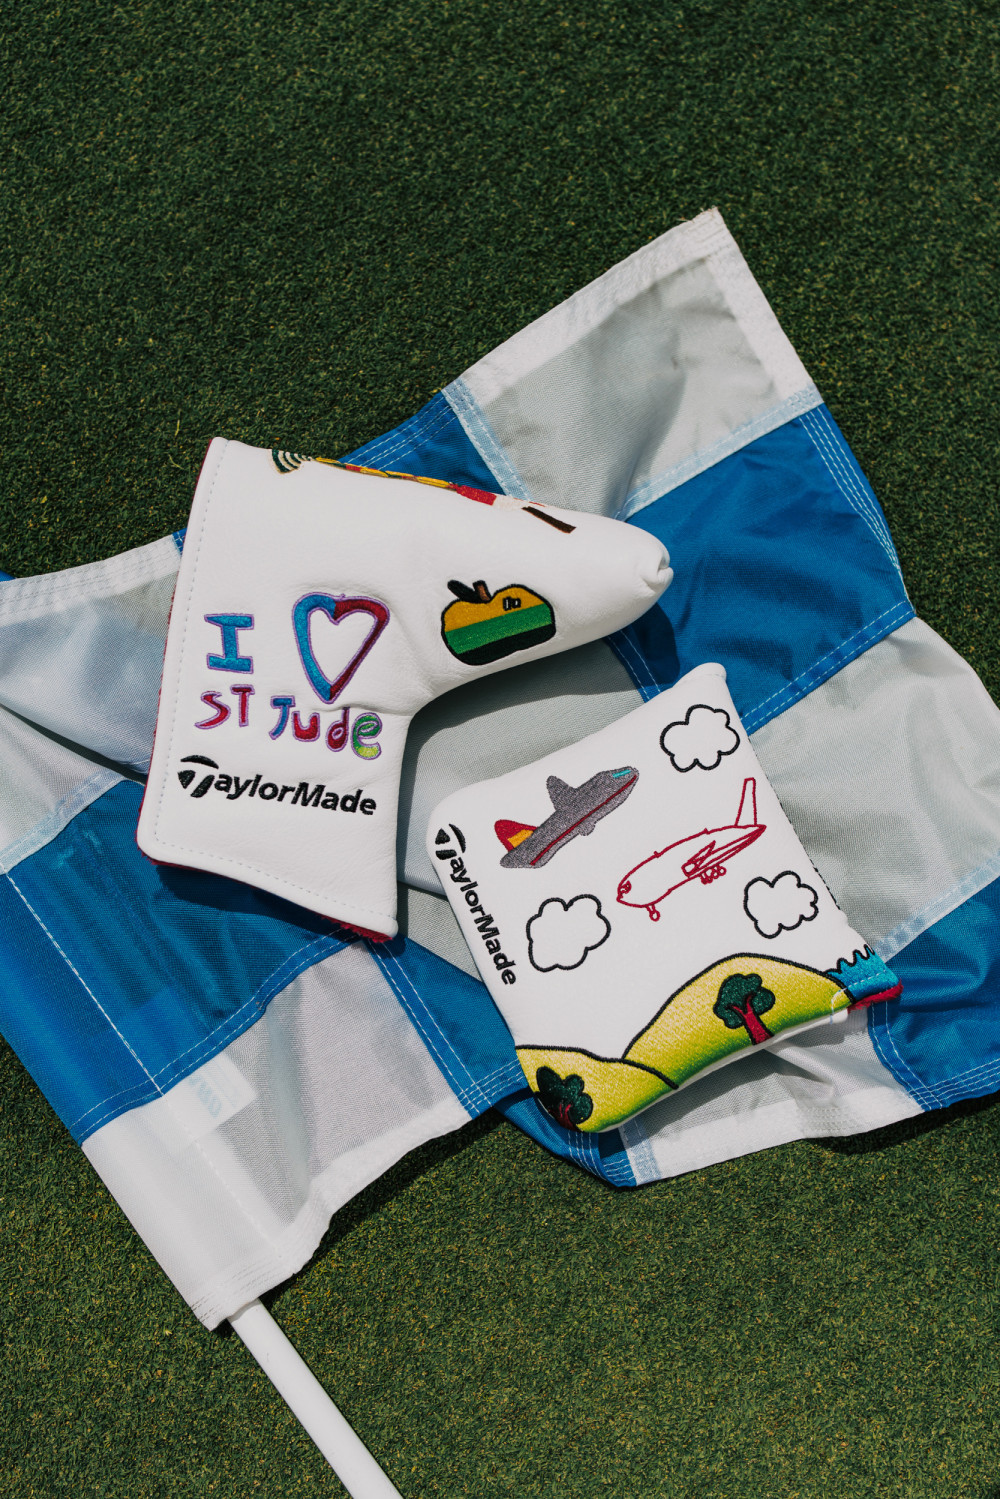 The headcovers used by TaylorMade athletes at the FedEx St. Jude Invitational.